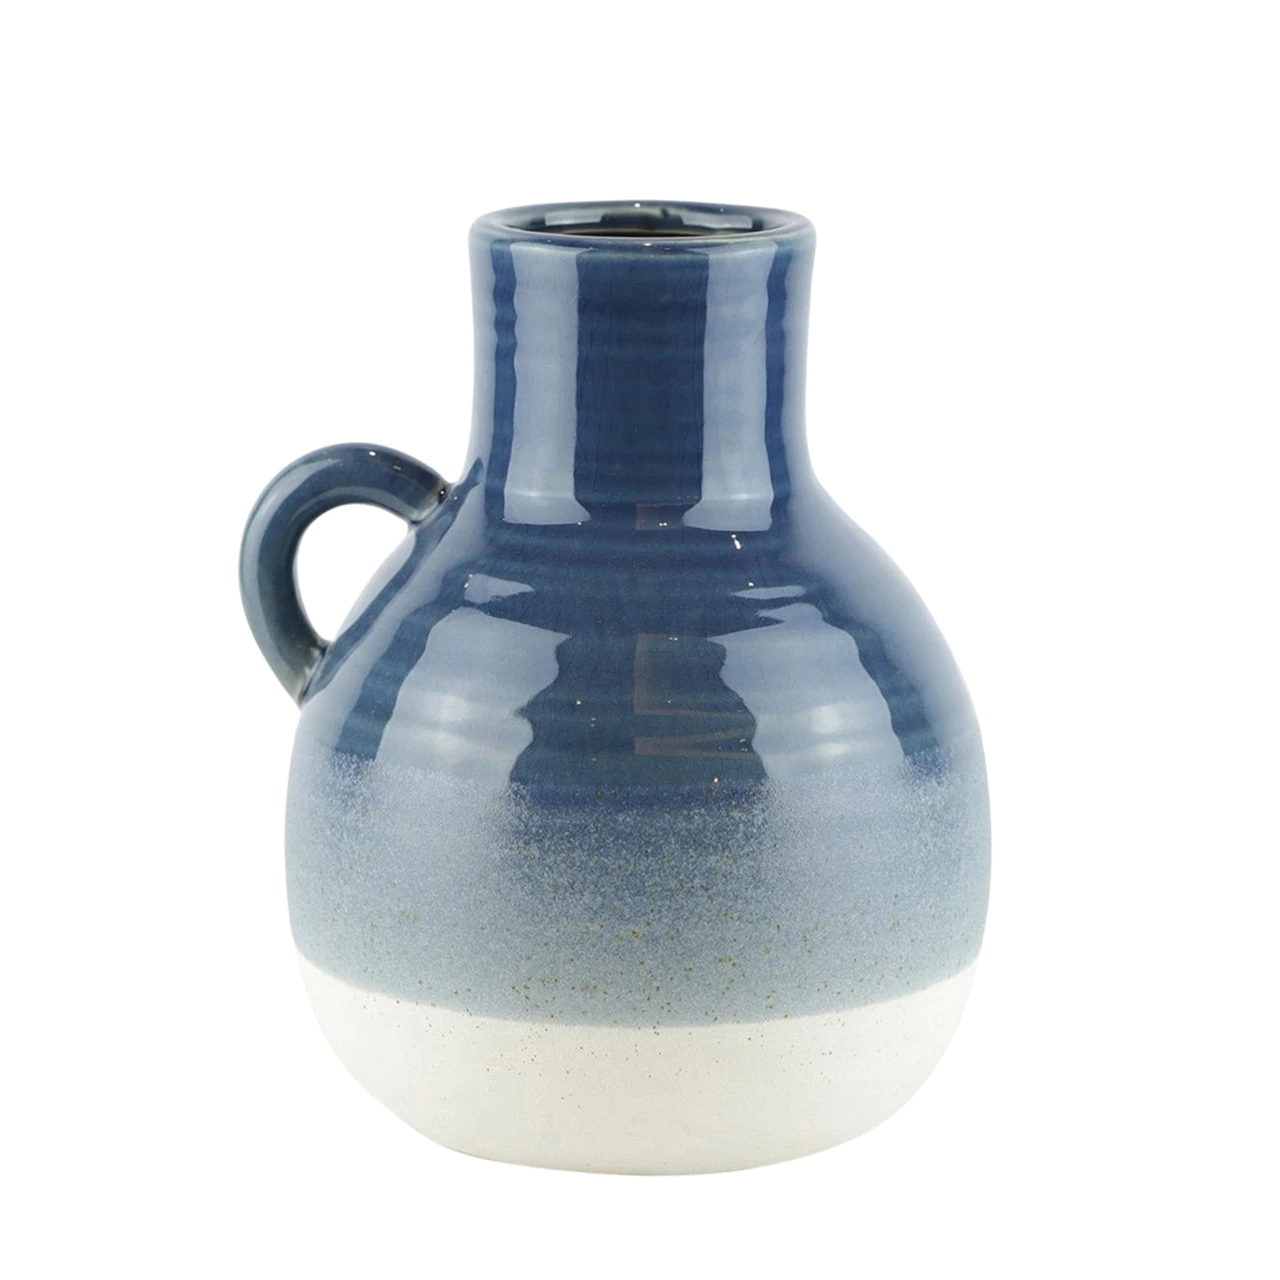 "Fleurish Home CERAMIC 9"" JUG, NAVY / WHITE"